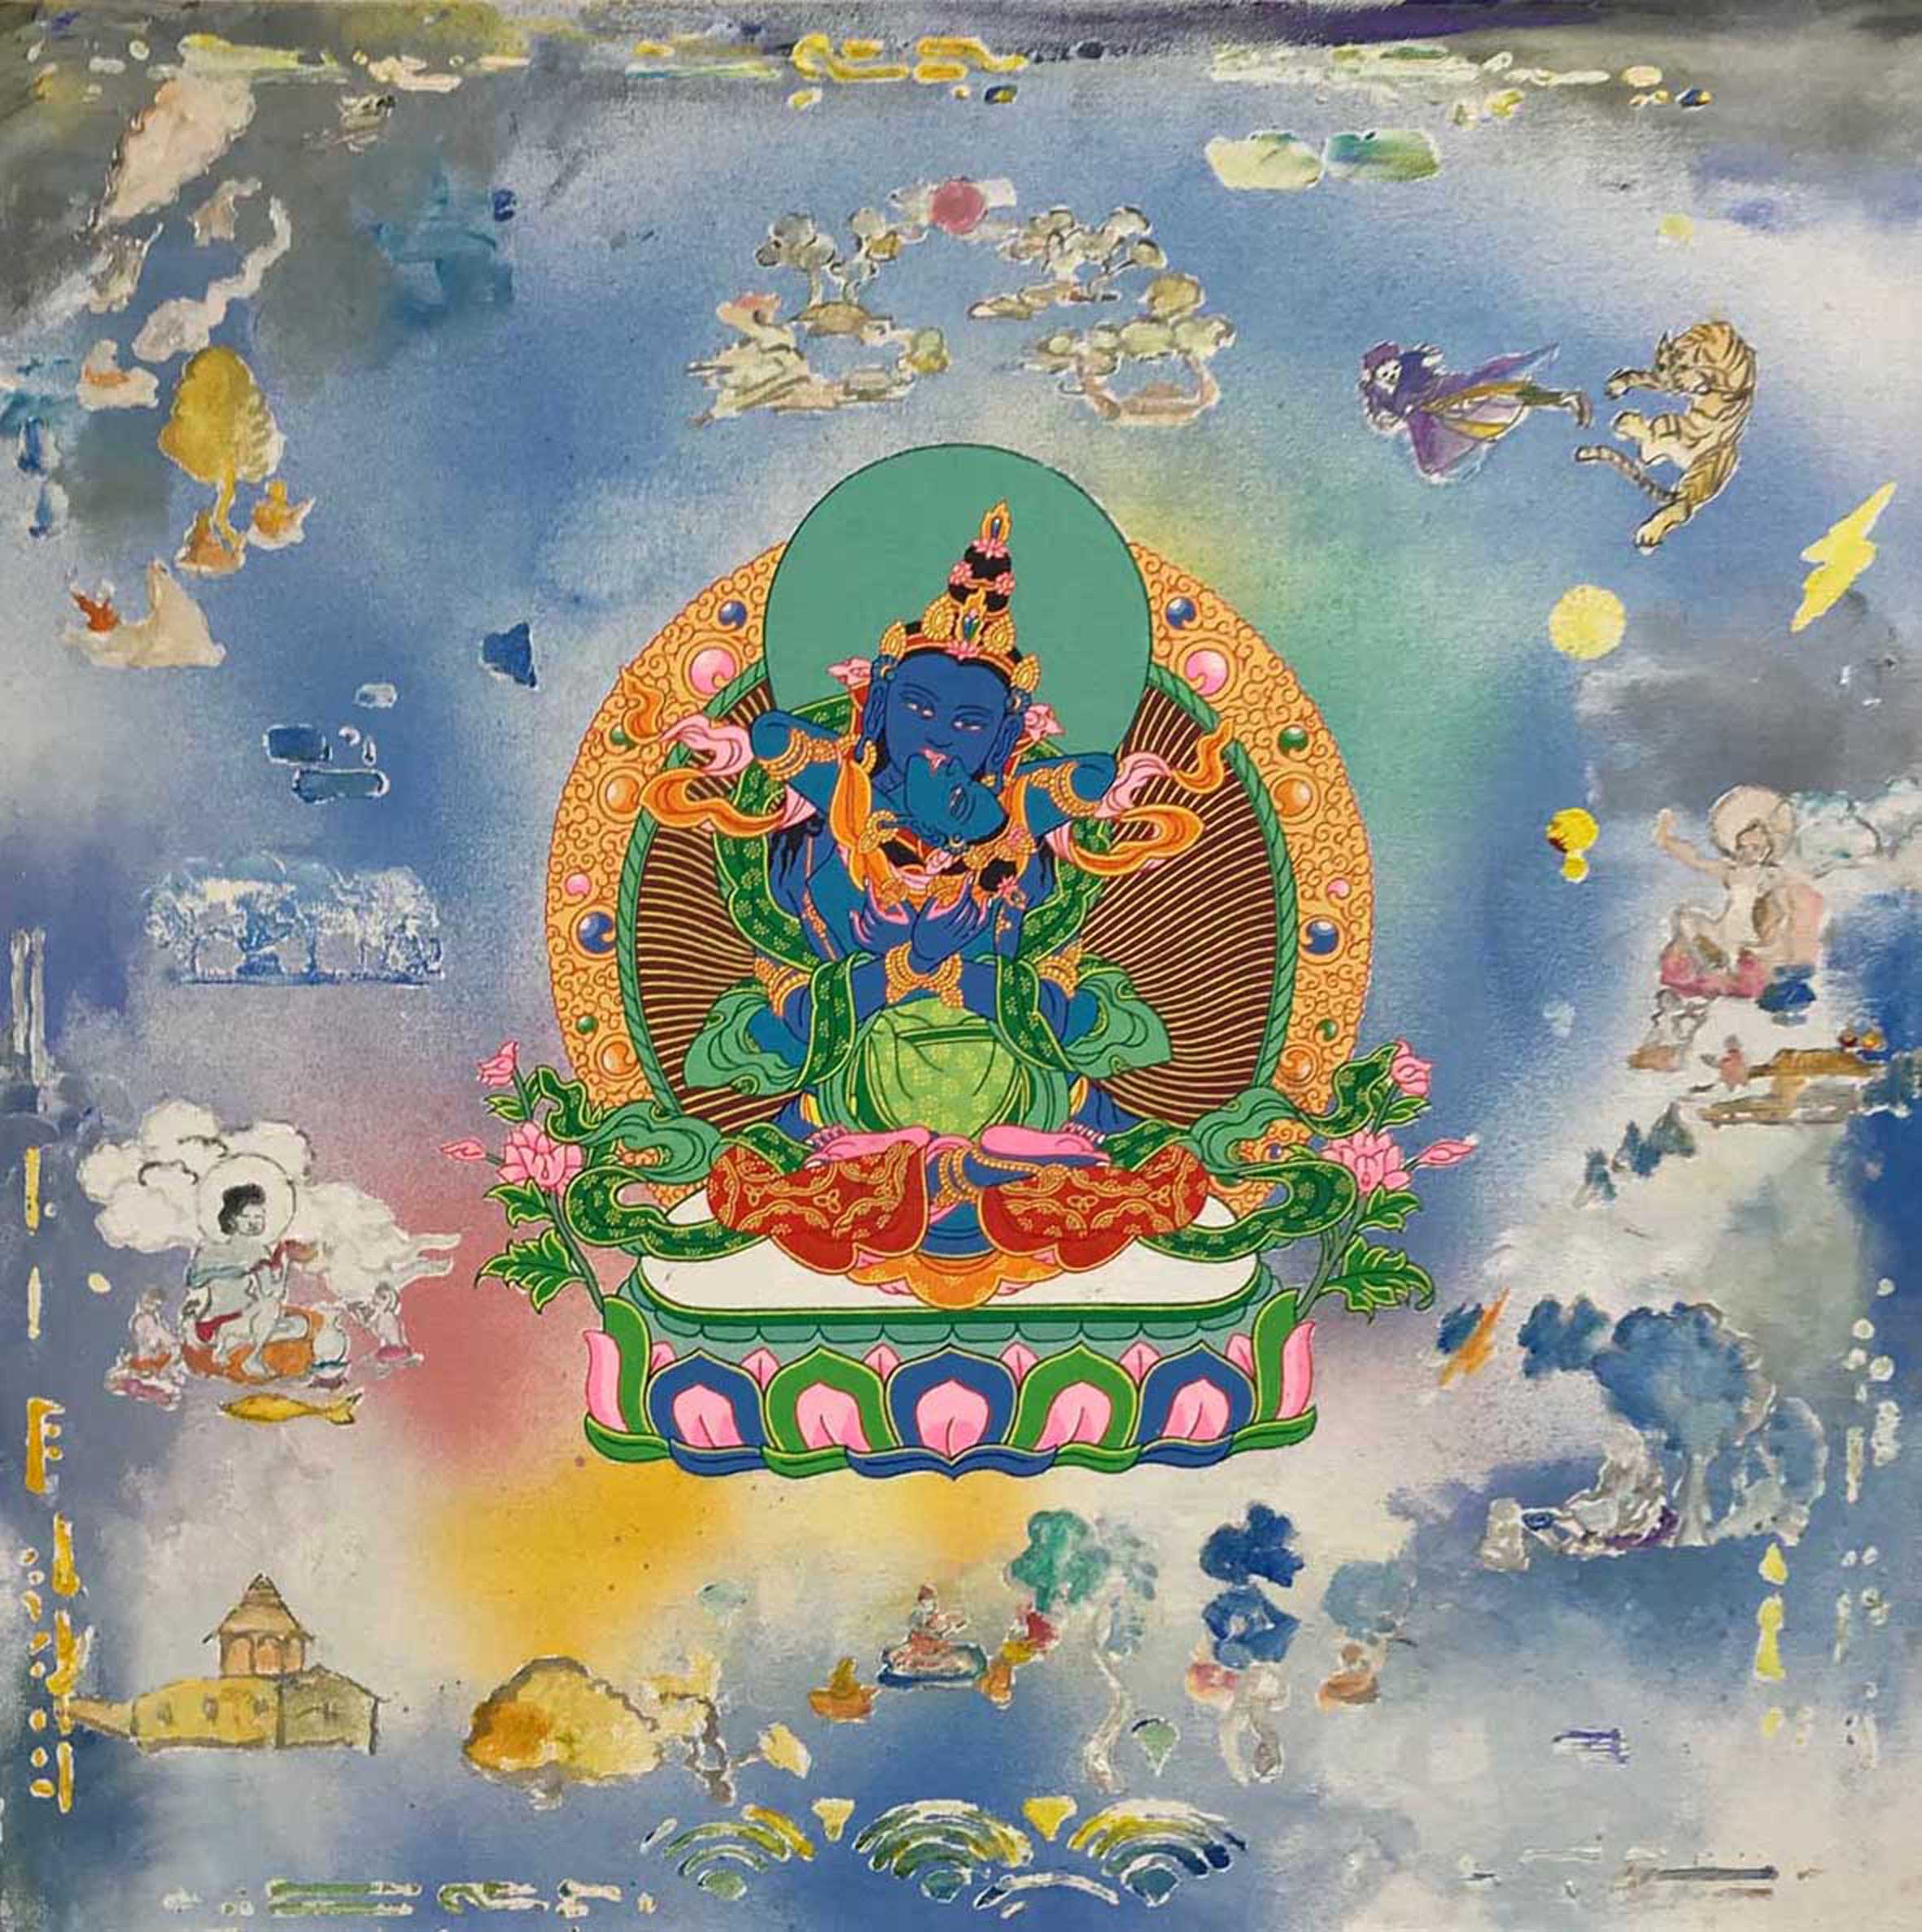 Vayradhara with consort. 2019. Acrylic on canvas (with Daniel Bogunovic). 61 x 61 cm $2,000